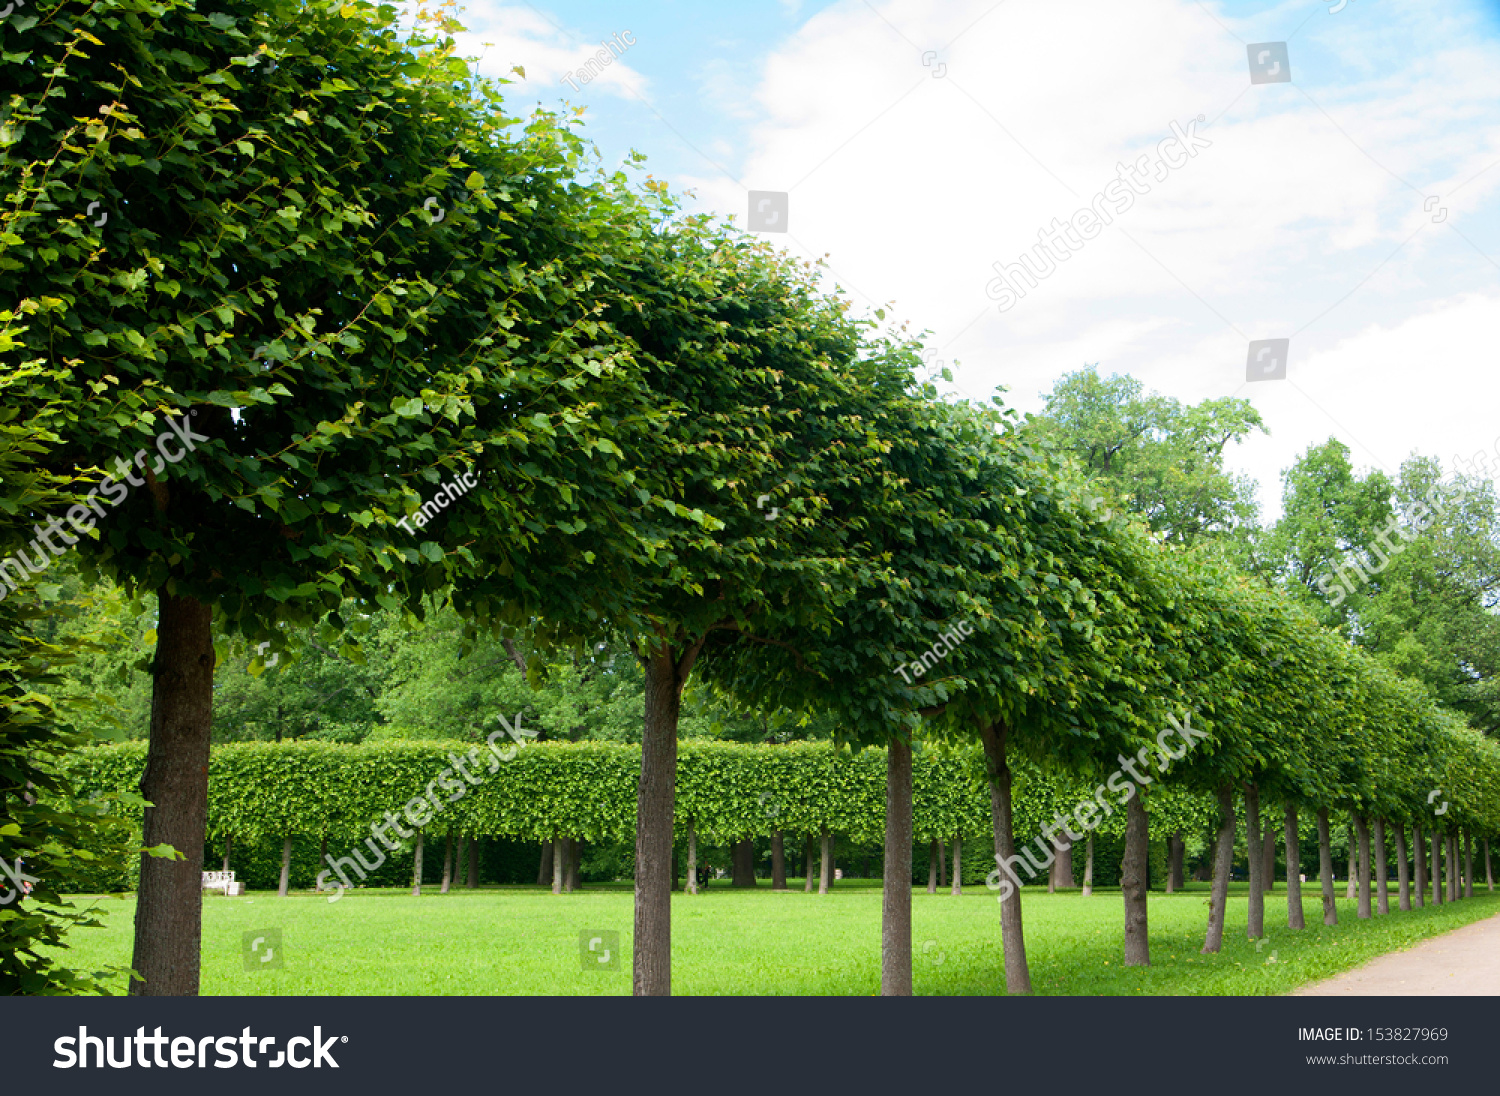 Alley Of Green Trees Trimmed Square Shape In The Park